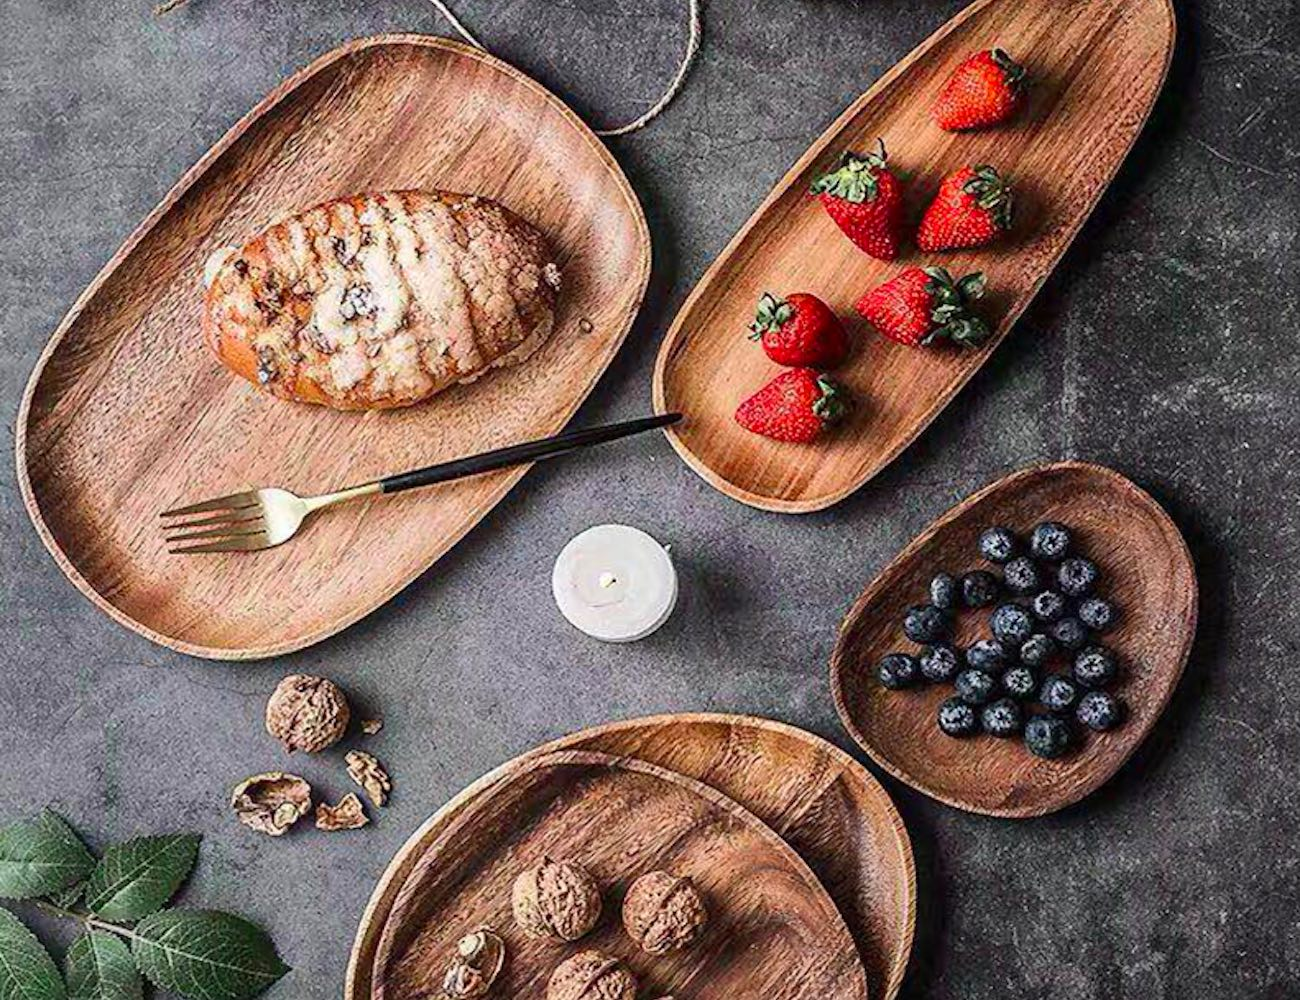 Eclectic Wooden Dinner Plates add rustic splendor to your table